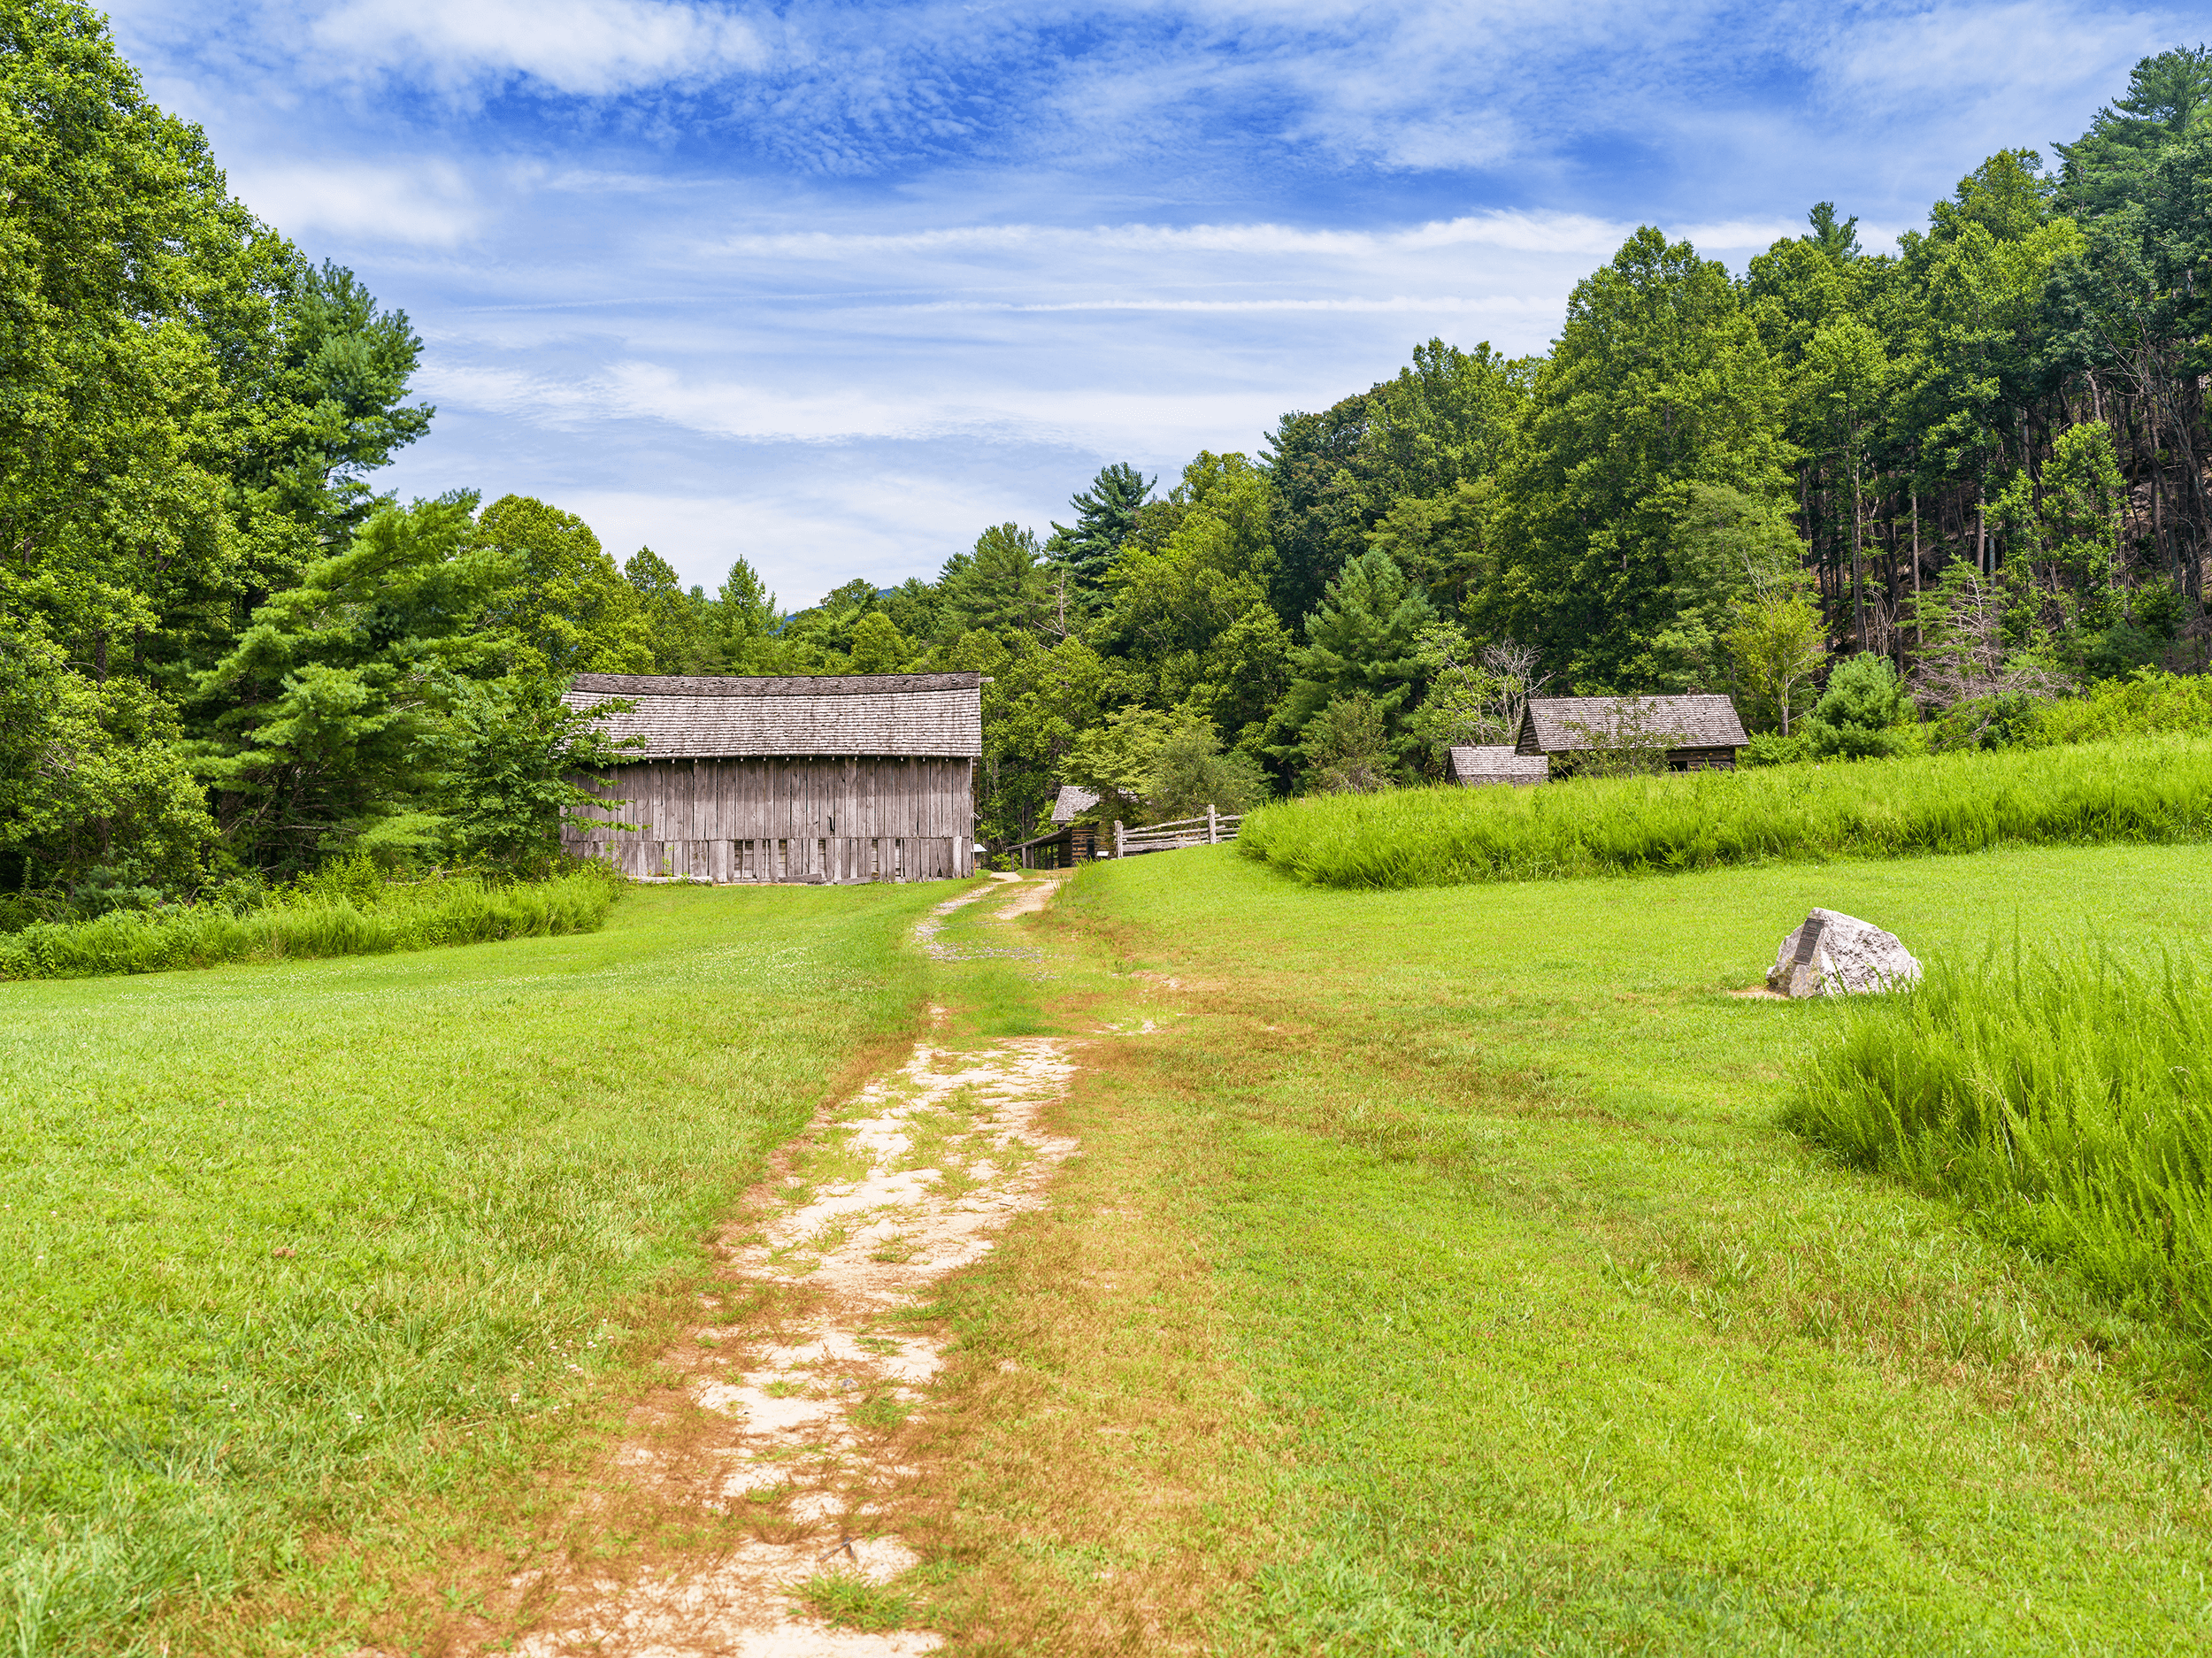 The park also preserves the area's rich history. The restored  Hutchison Homestead  features several buildings from the mid-1800s, such as a log cabin, barn, blacksmith shop, and meat house.